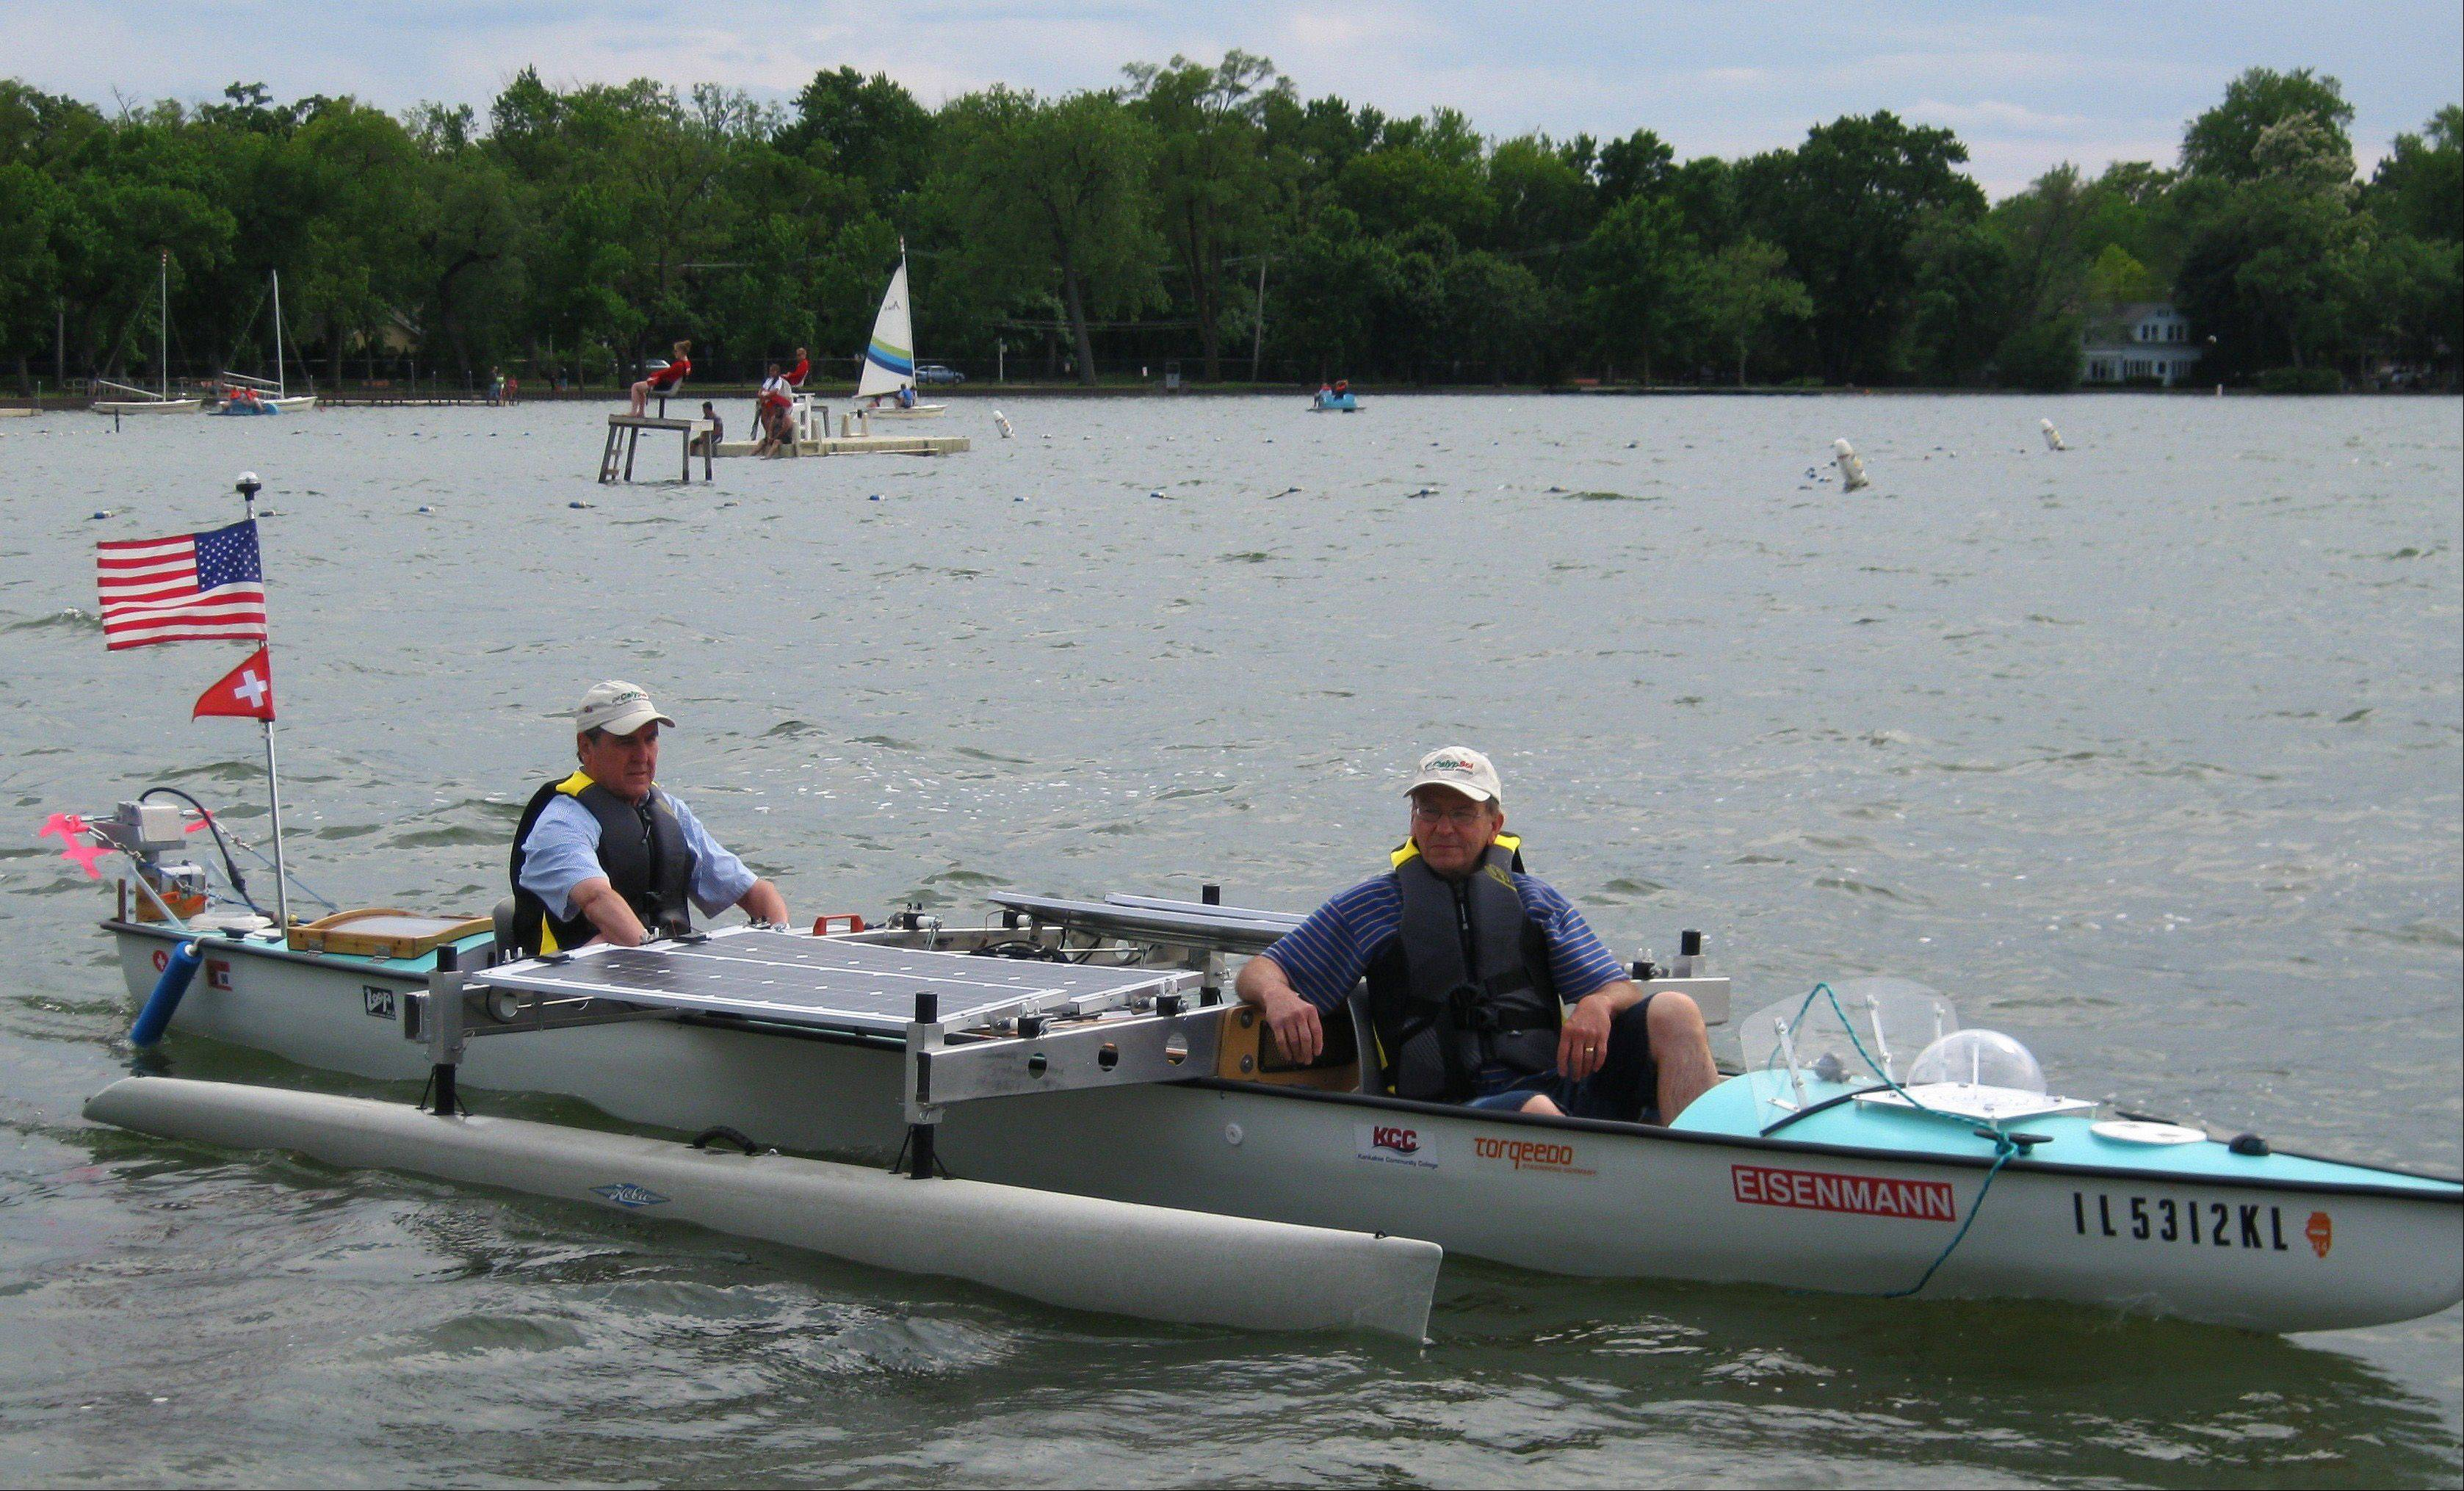 Raymond Christe of Crystal Lake, left, and Larry Kozak of Algonquin make the inaugural ride on their CalypSol Trimaran on the lake of Crystal Lake.